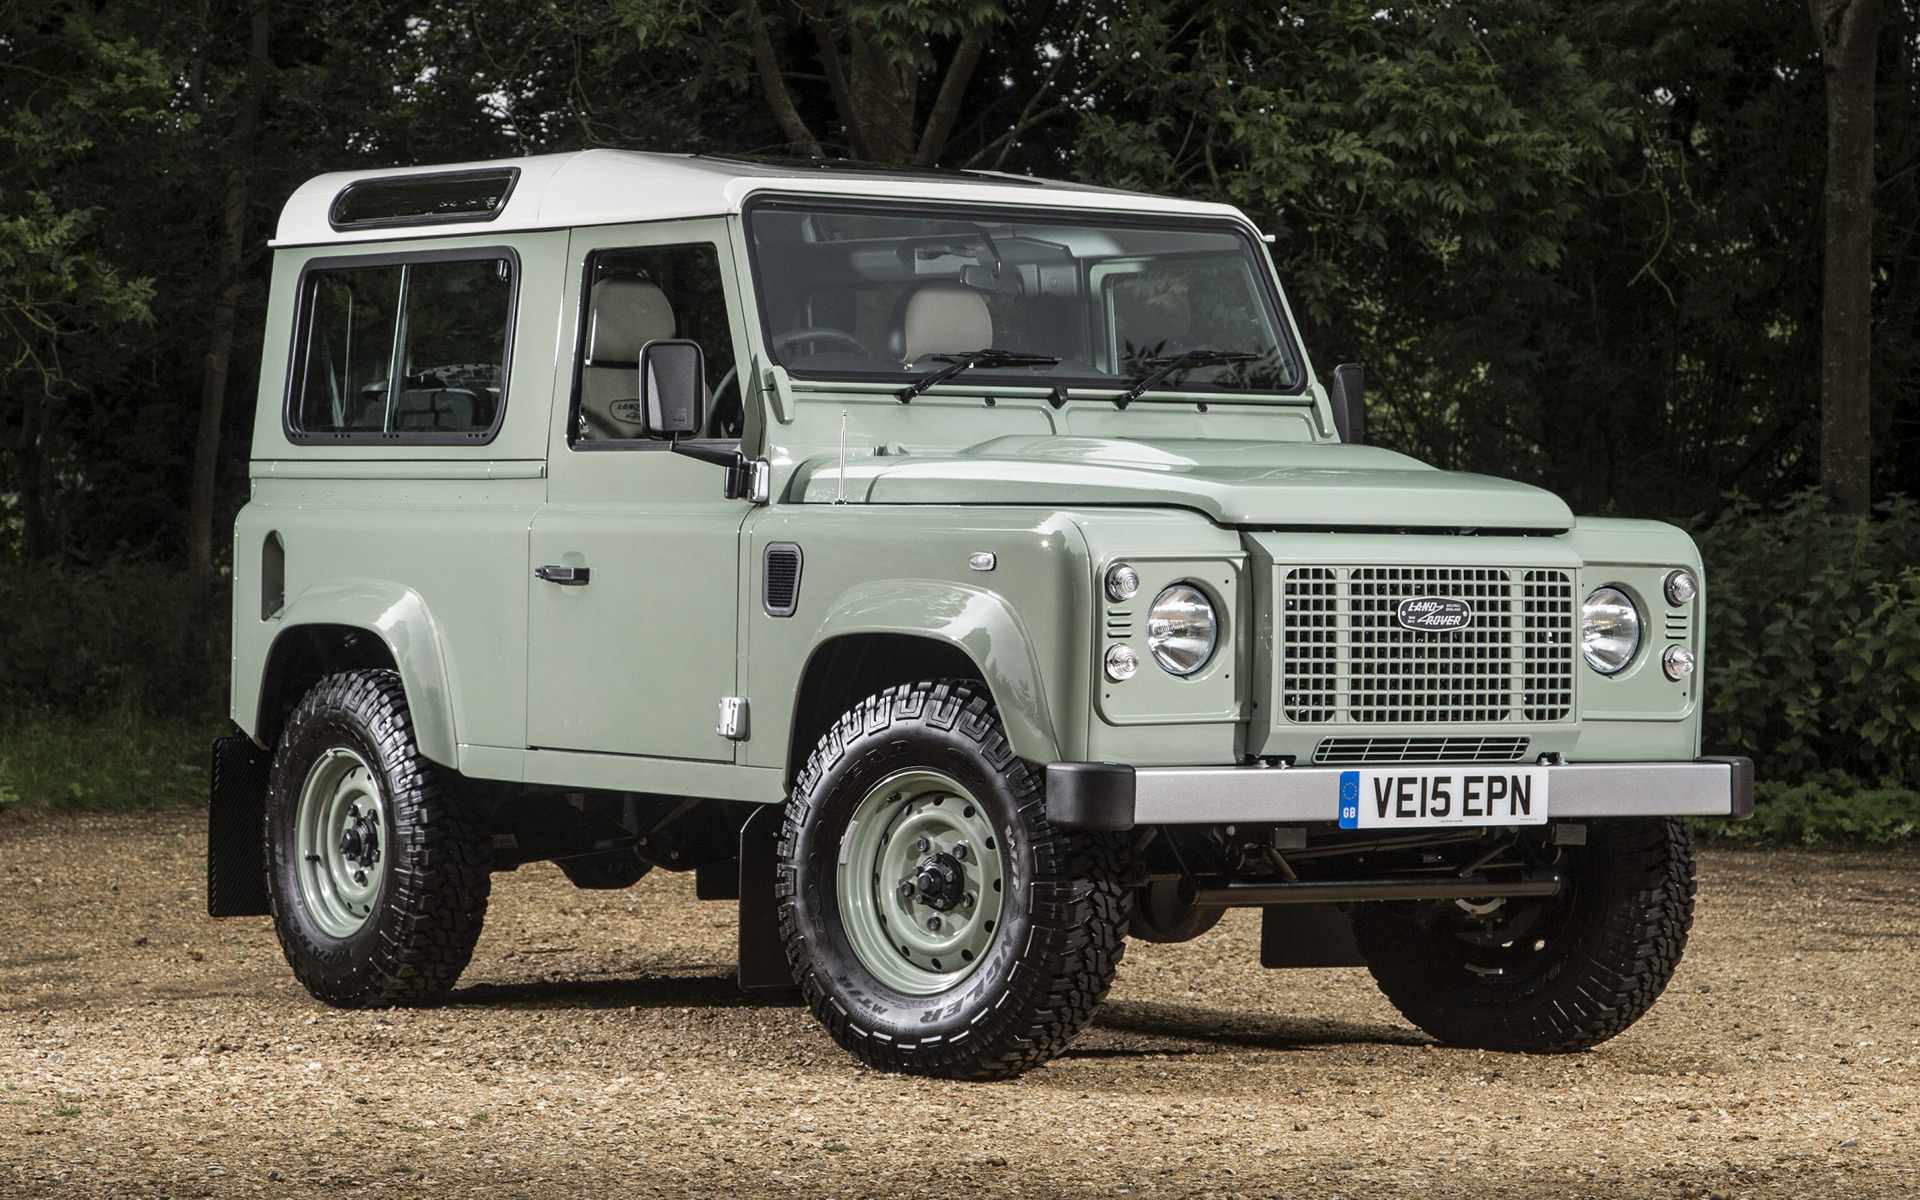 Jeep Suv 2015 >> 2015 Land Rover Defender 90 Heritage (UK) - Wallpapers and ...